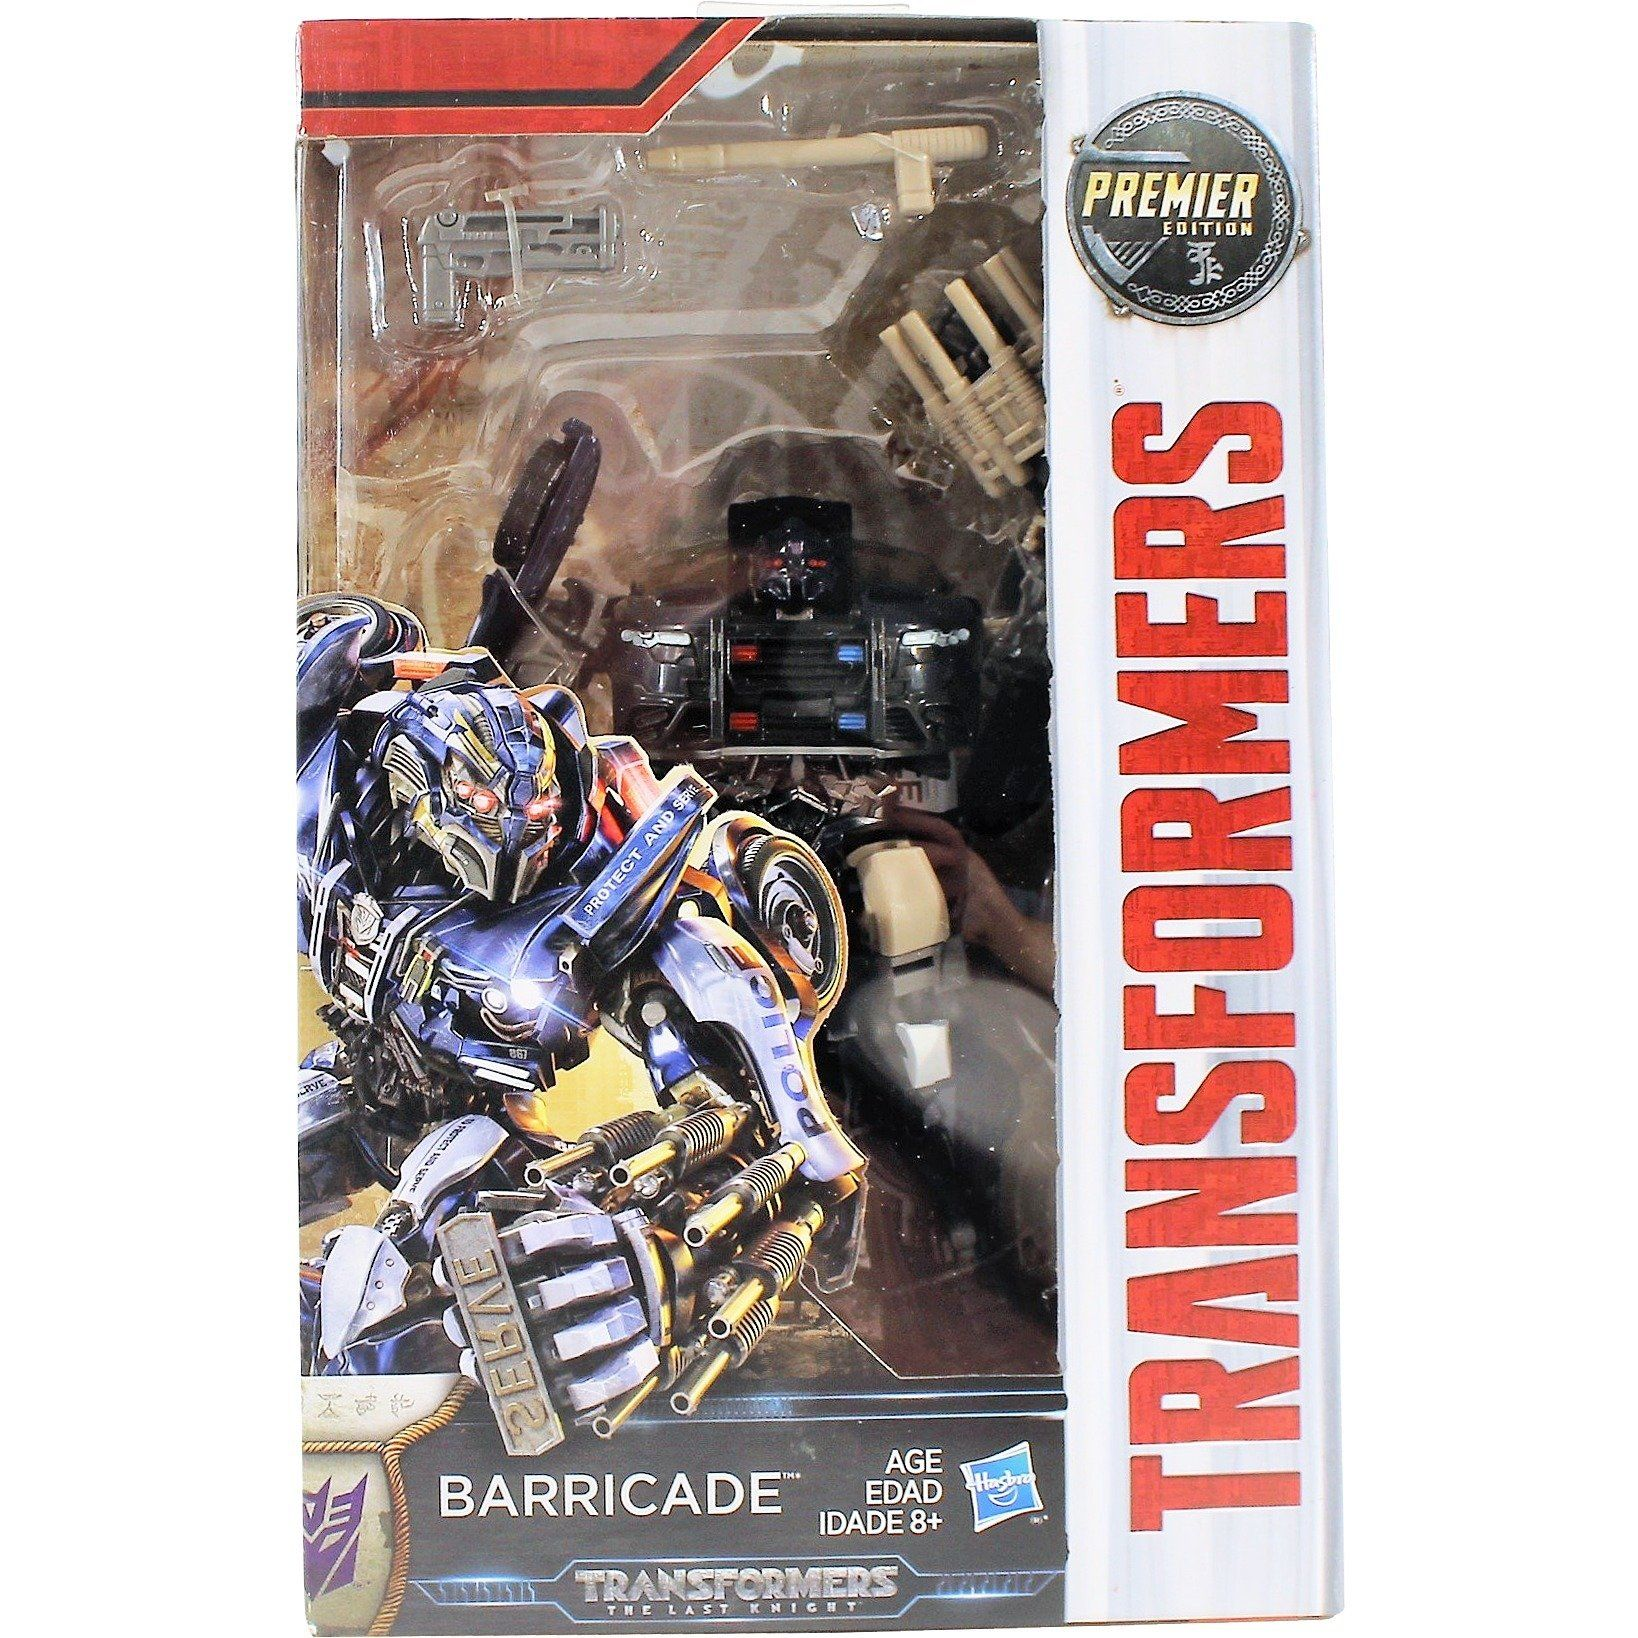 Transformers The Last Knight Premier Edition Deluxe Class Barricade New MISB